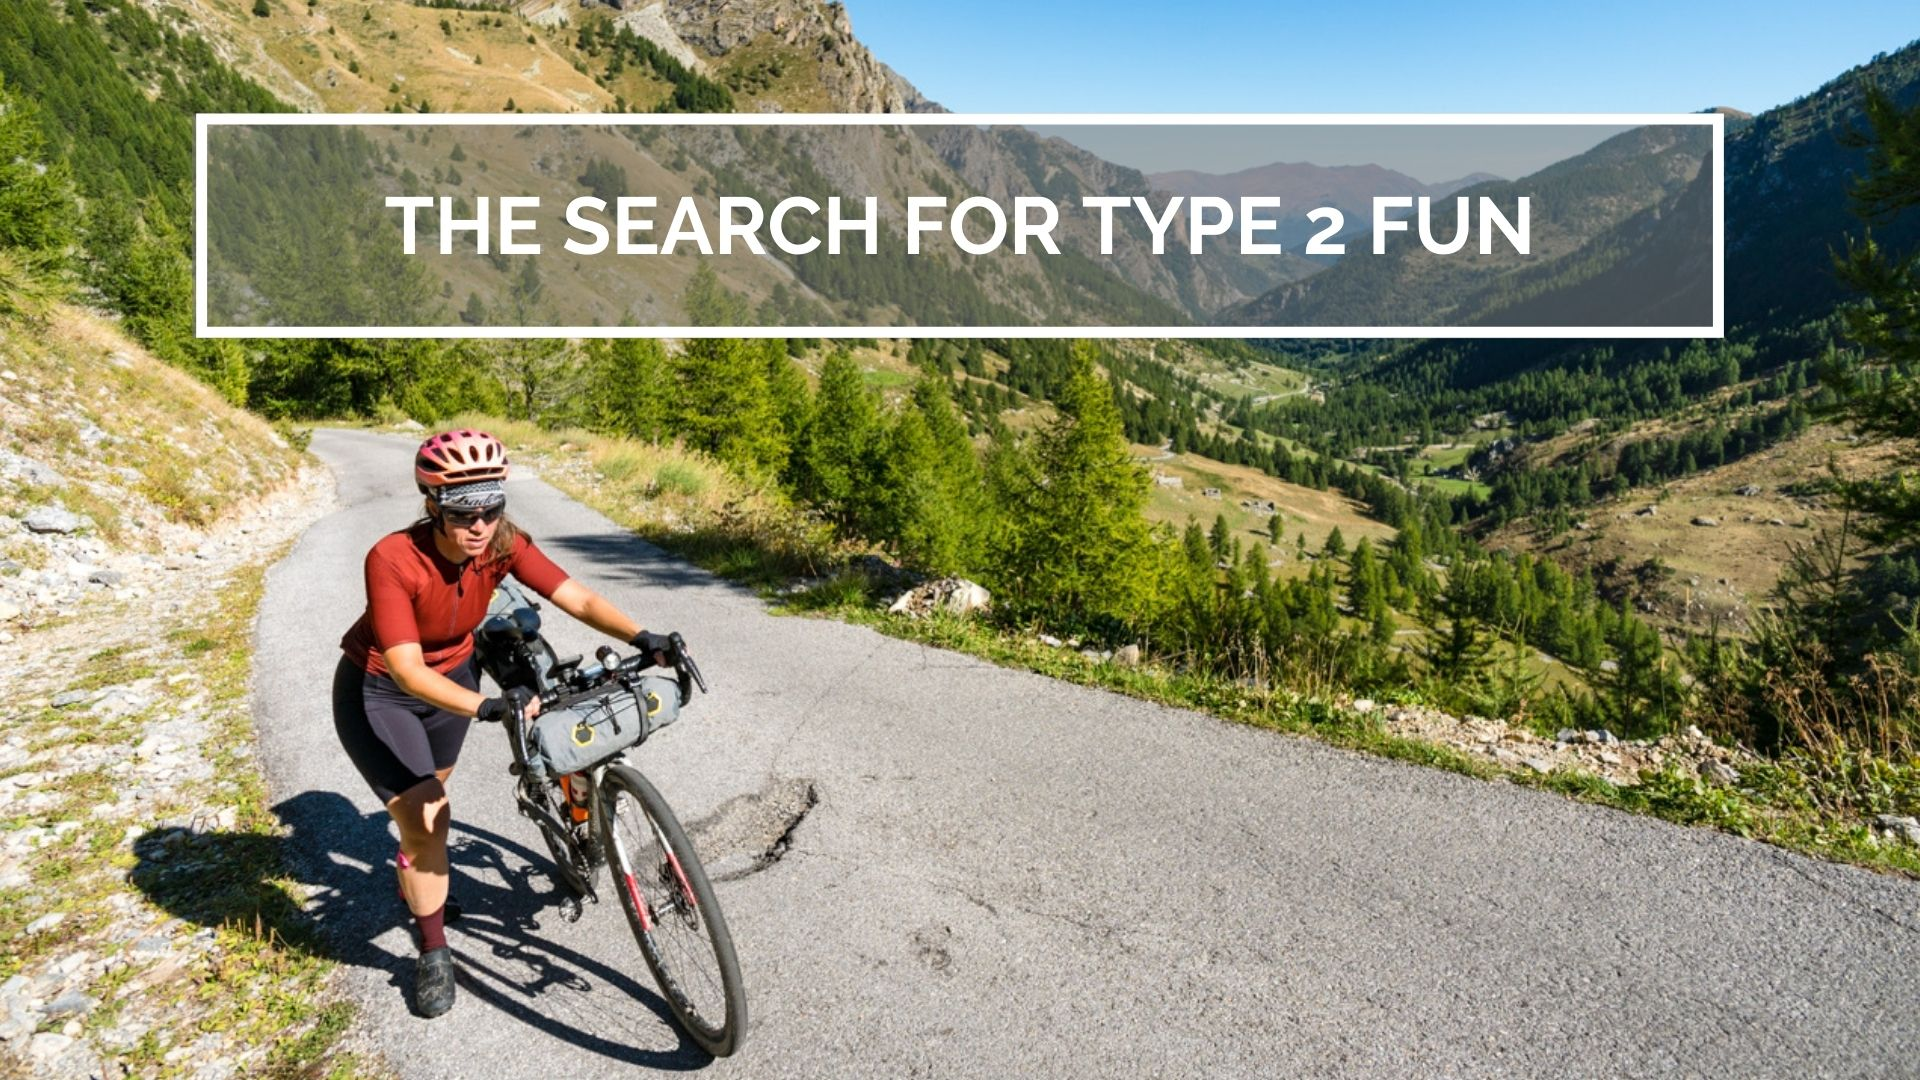 The search for type 2 fun